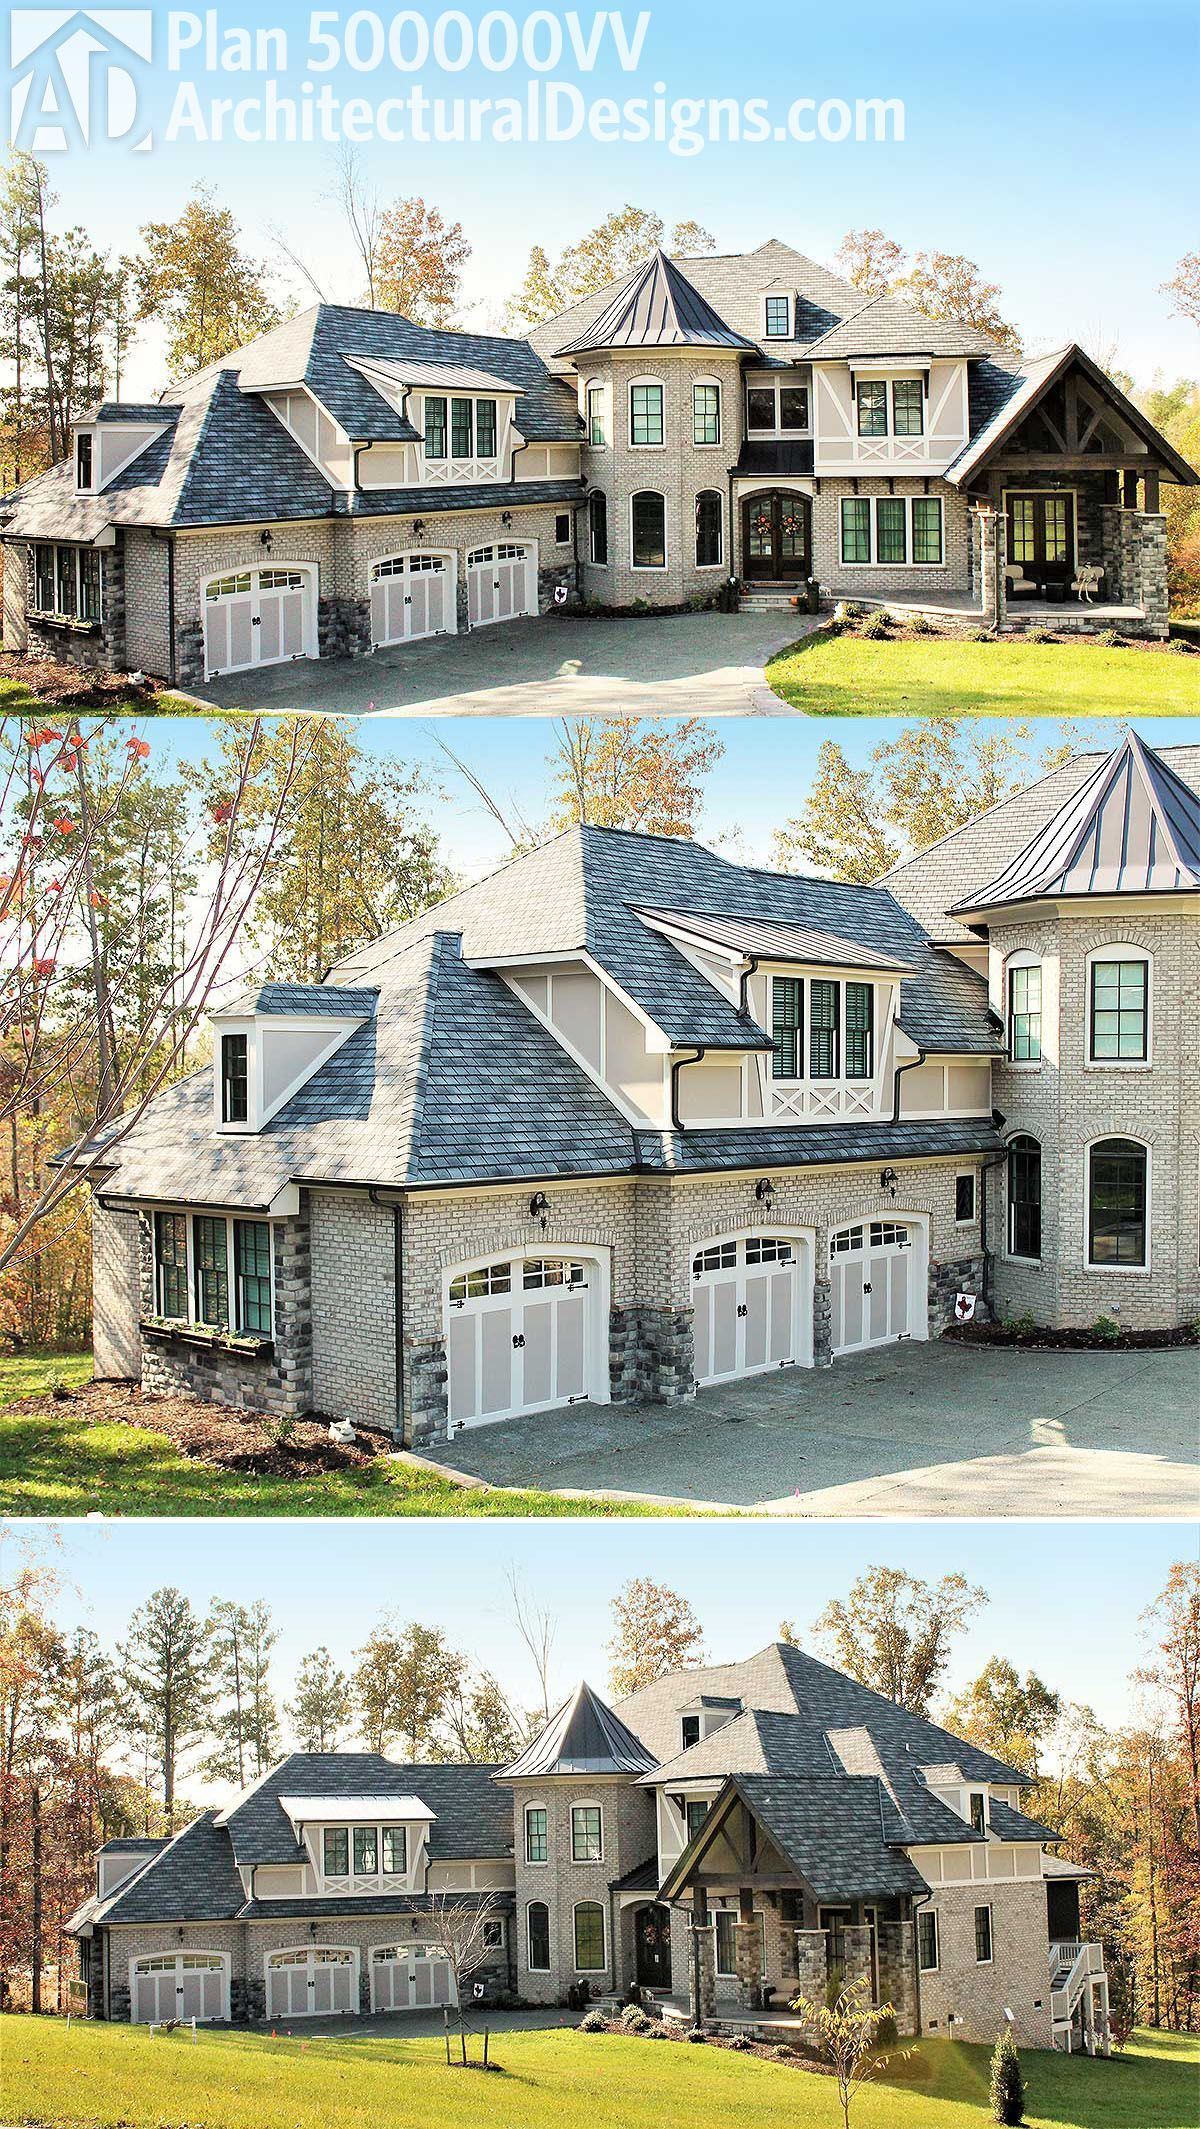 Architectural Designs 4 Bed Luxury House Plan 500000vv Has A Brick Exterior With Stone And Stucco Accent Luxury House Plans European House European House Plans